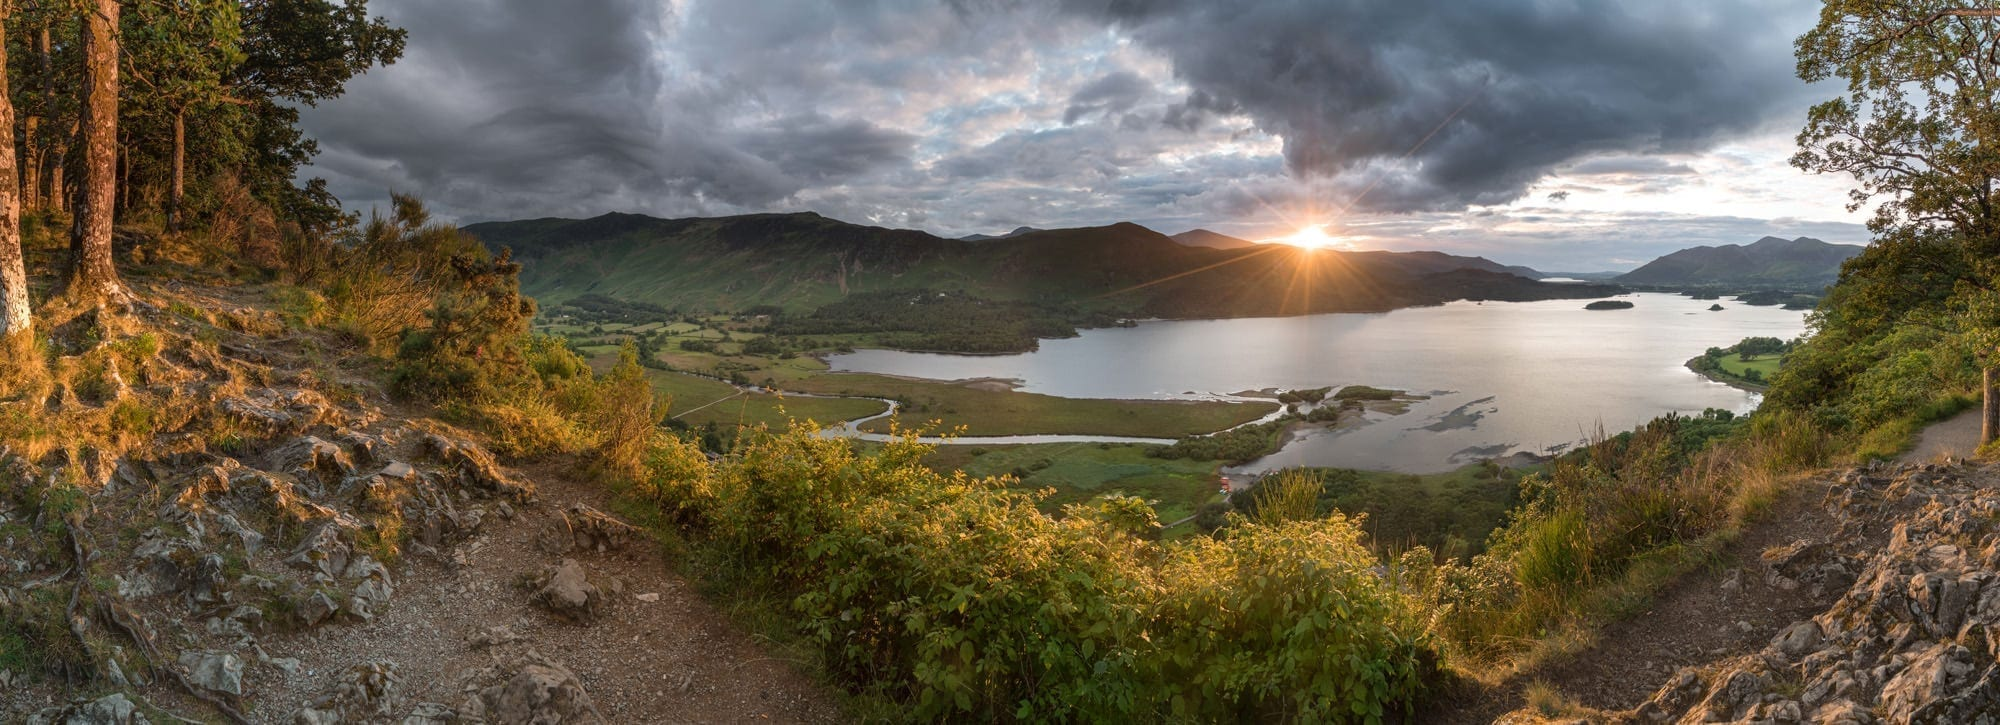 Surprise View Sunset - Lake District Photography